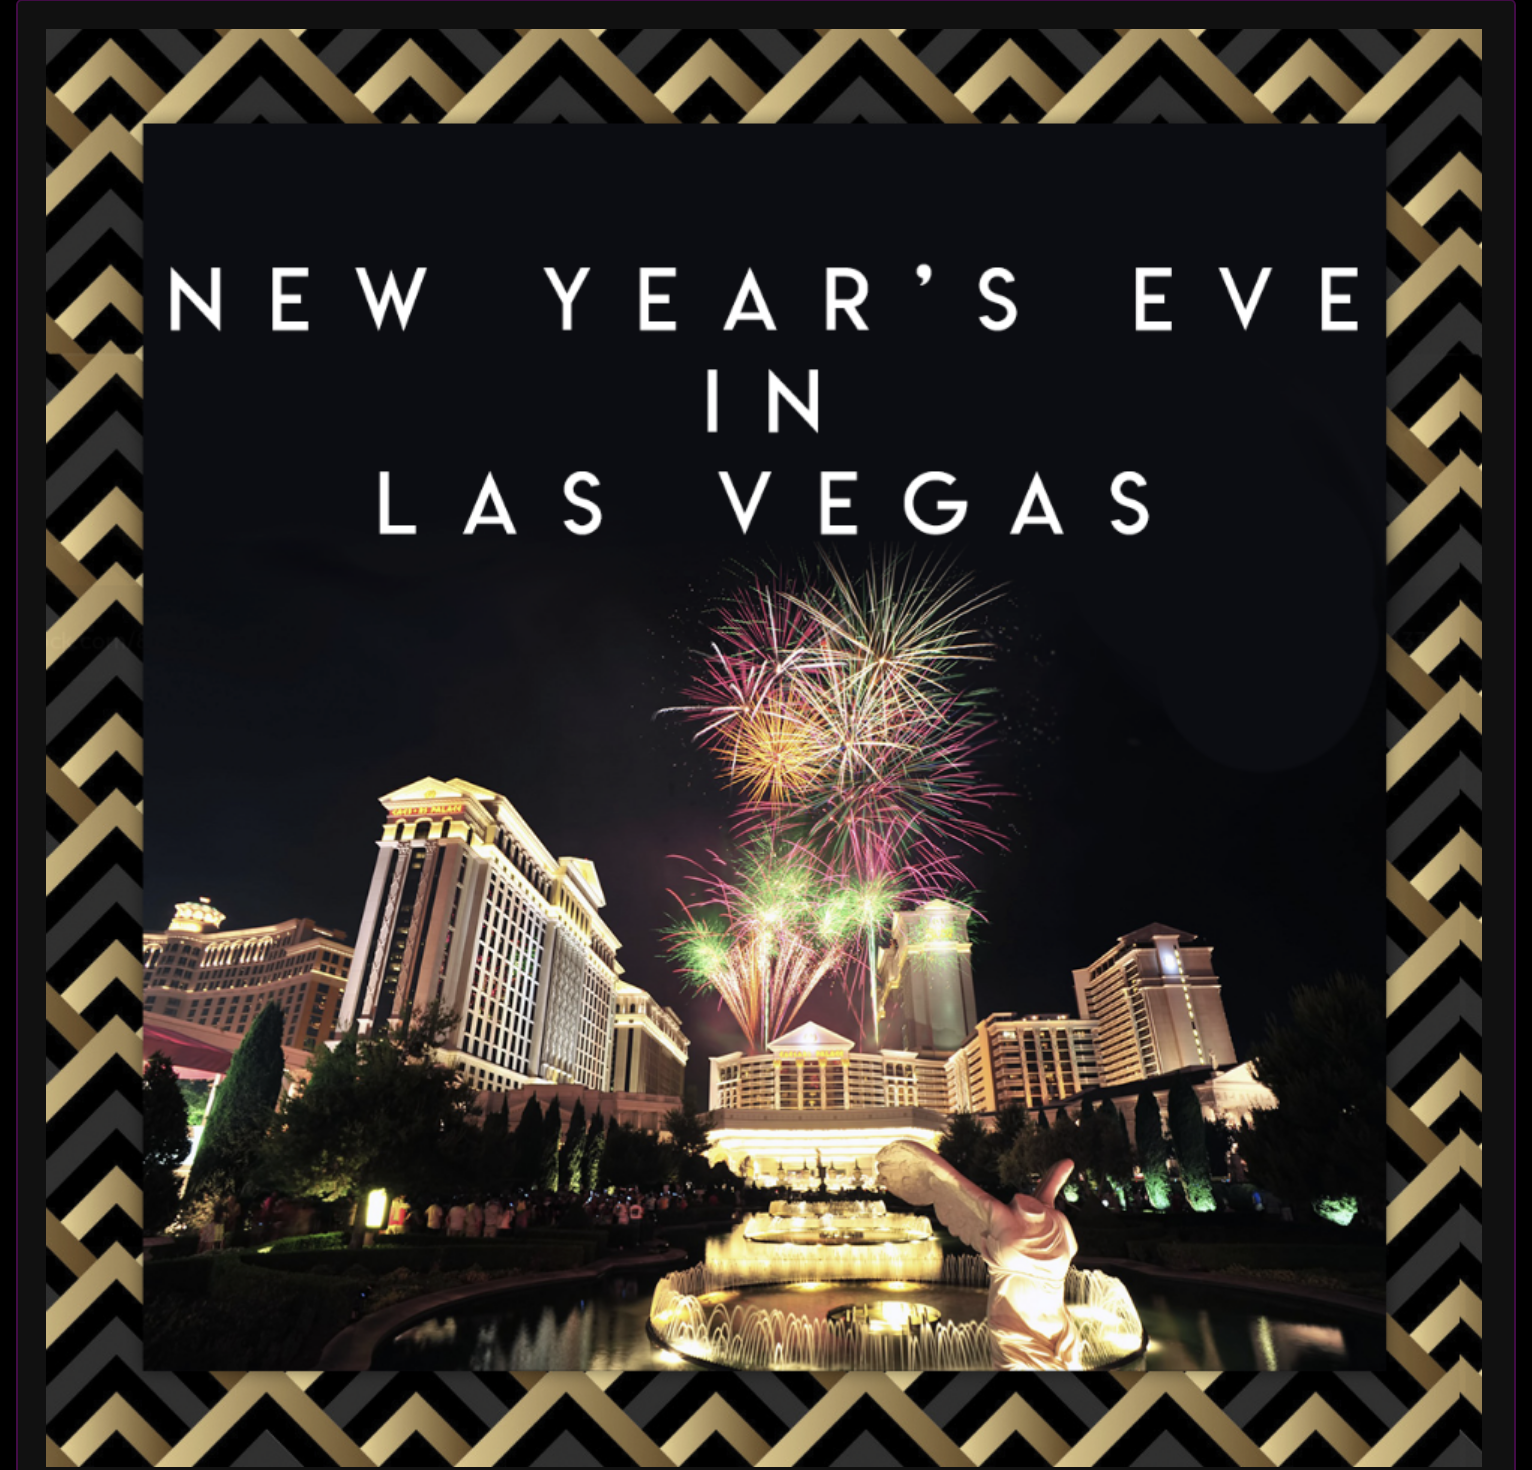 Things To Do In Las Vegas For New Year's Eve 2019 New